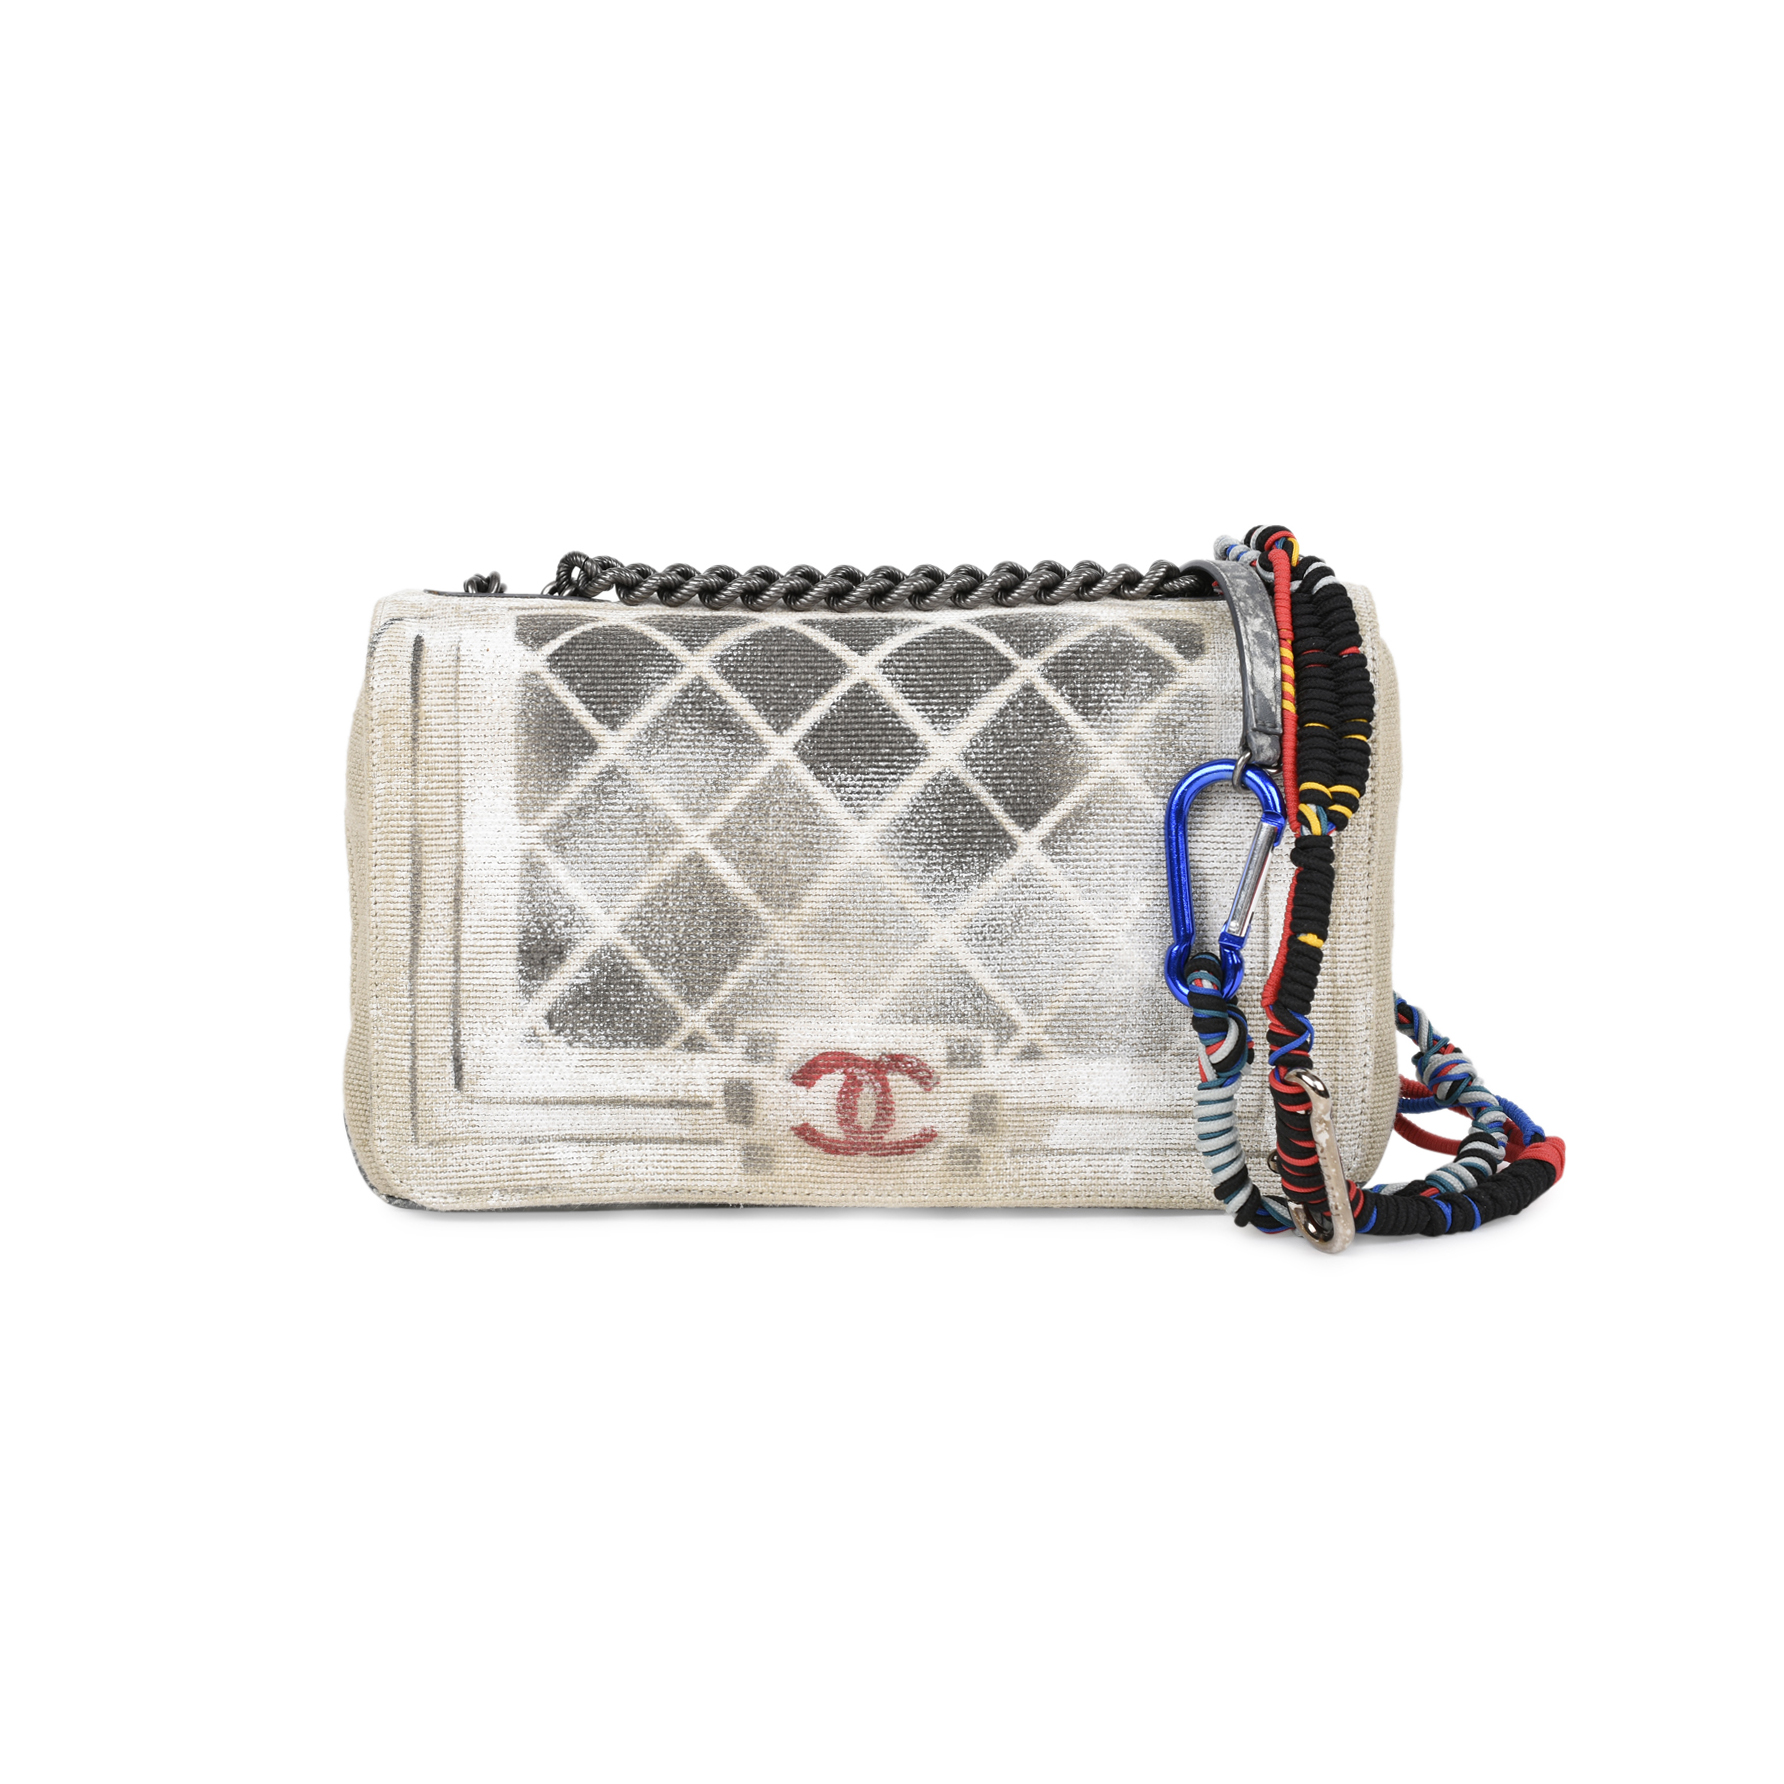 Authentic Second Hand Chanel Oh My Boy Graffiti Bag Pss 515 00009 The Fifth Collection